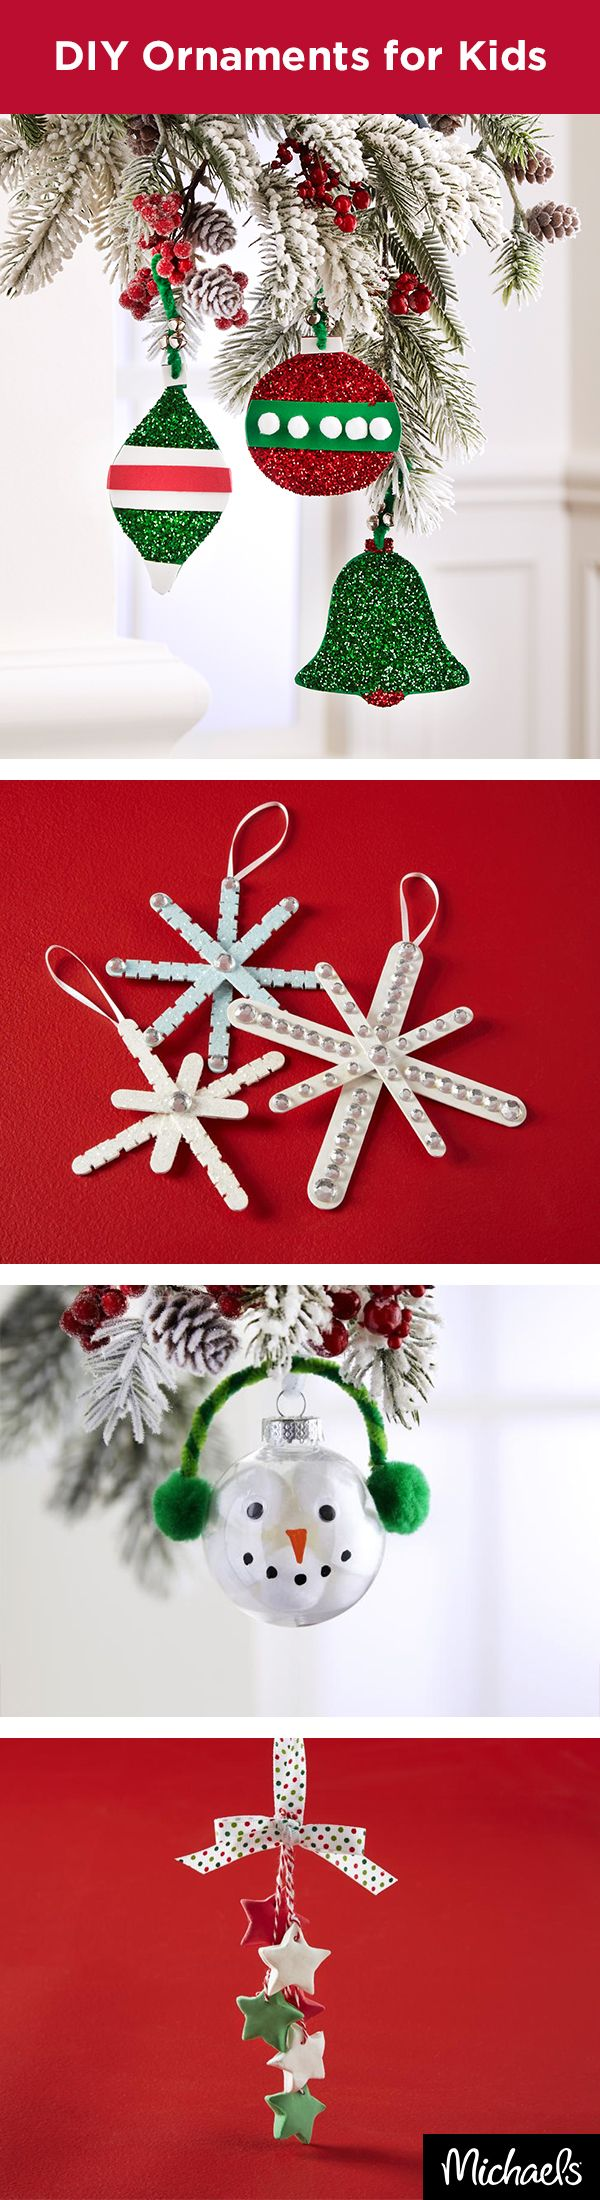 Craft DIY ornaments with the kids this holiday season. Using craft foam, pom poms, clay and craft sticks, children will love making their own adornments for the tree. Get all the supplies you need to make these ornaments at your local Michaels store.